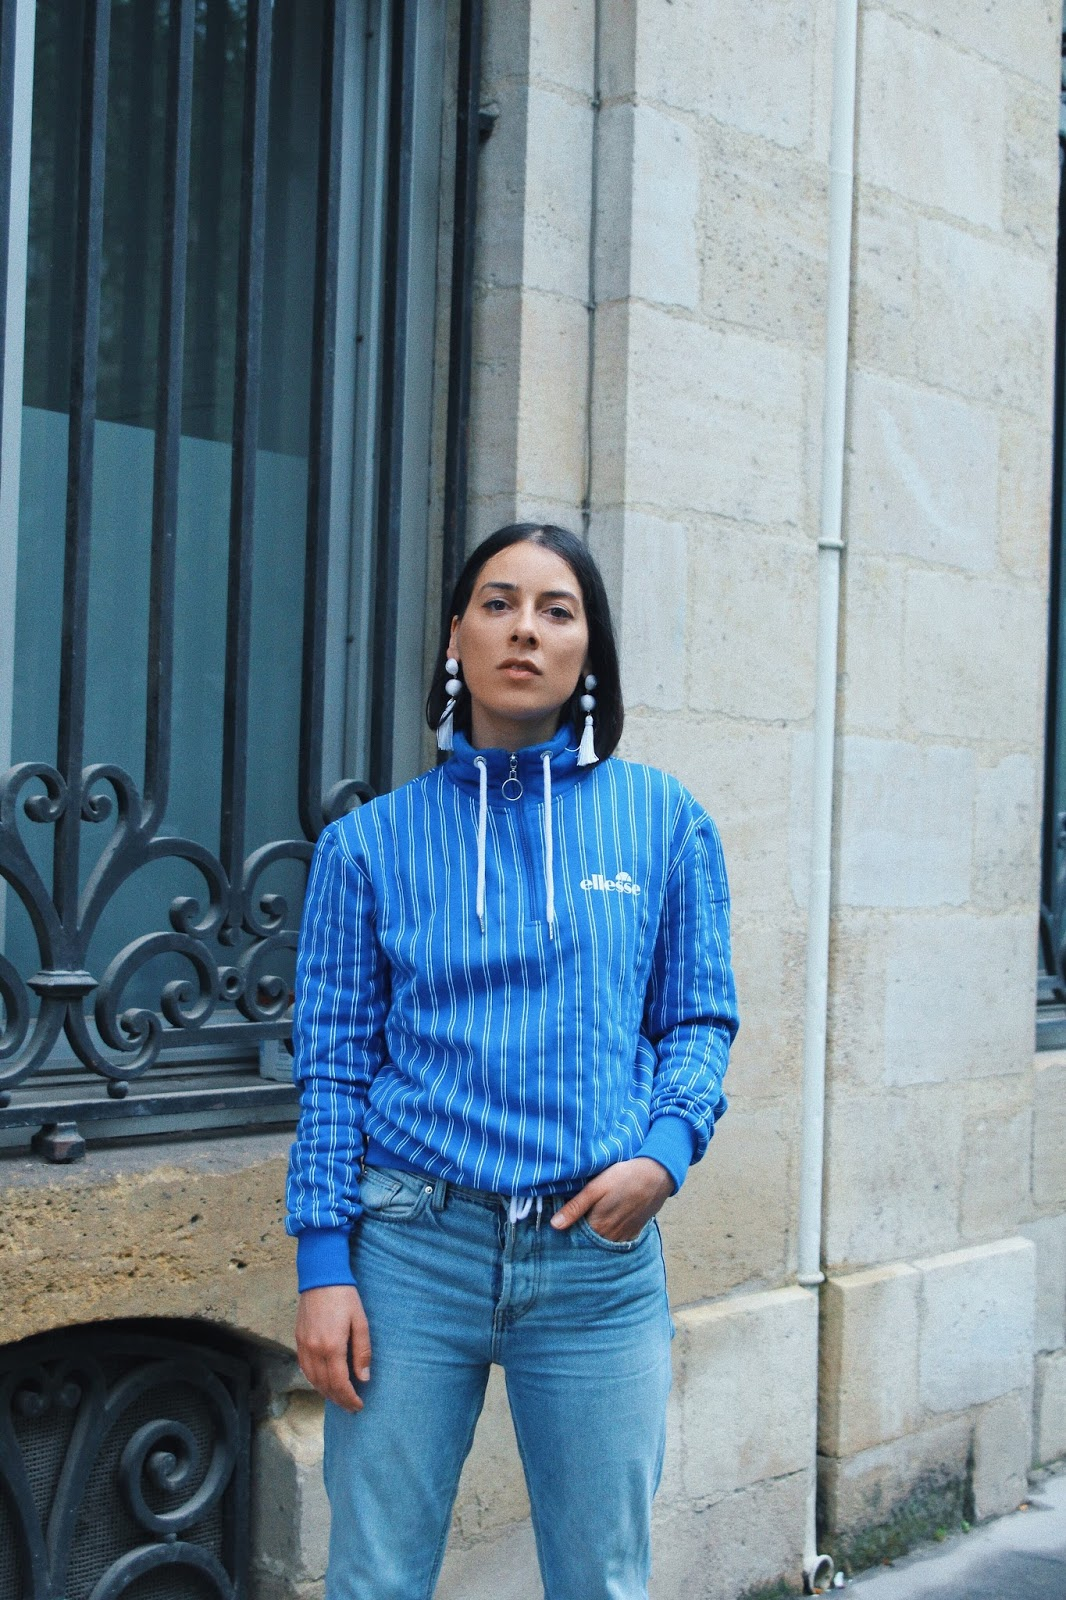 comment porter du street-wear, tendance 2018, printemps elles